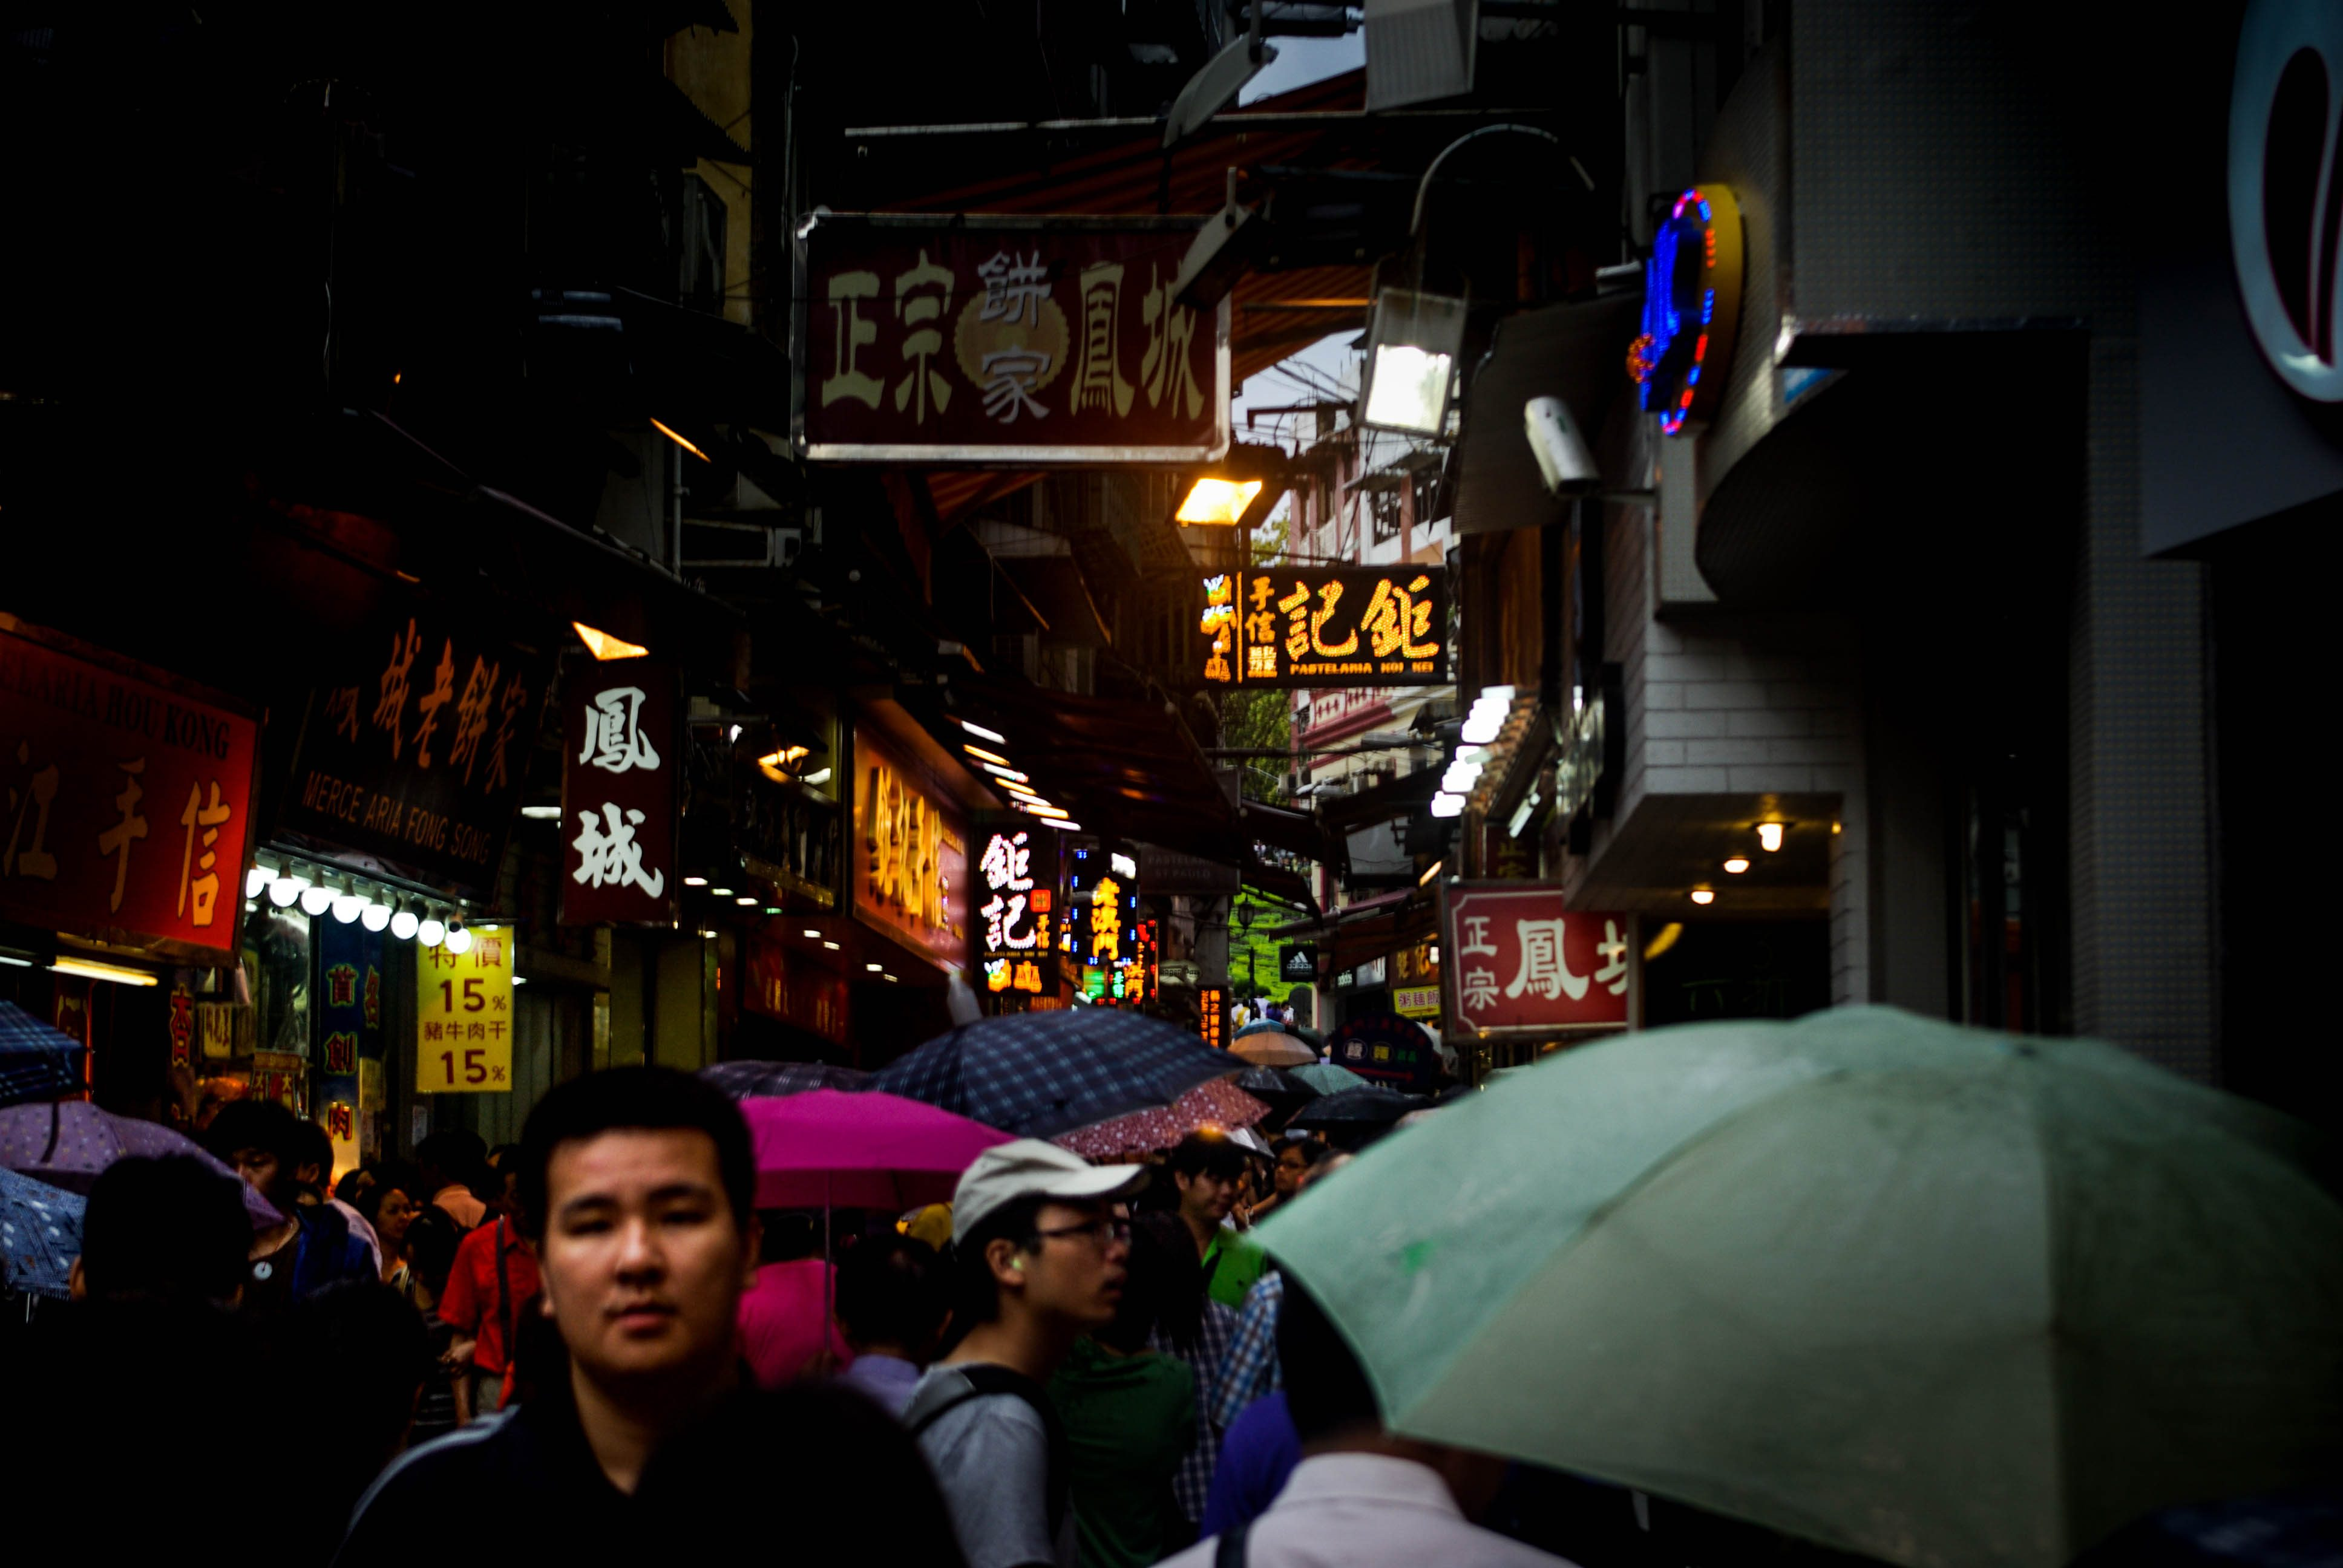 <p>A crowded shopping street in Macao.</p>